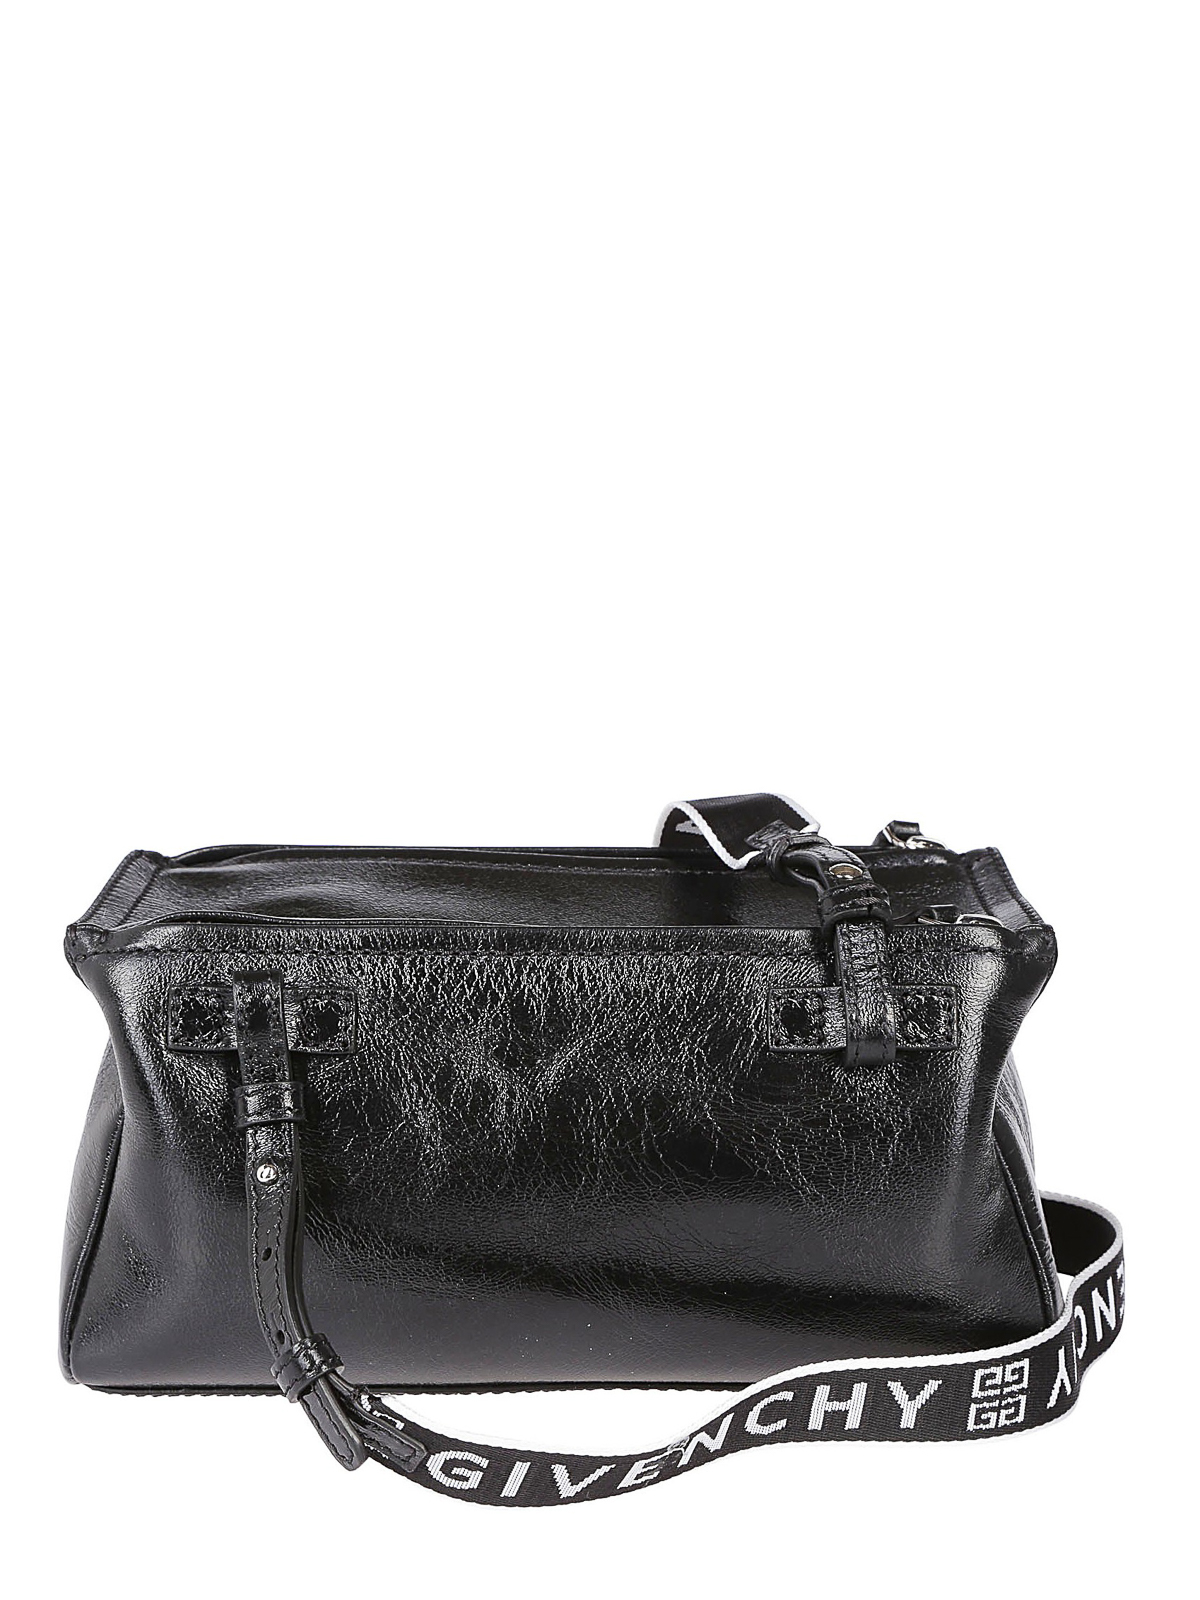 iKRIX GIVENCHY  cross body bags - Pandora Mini black crackle patent bag a1d7b92d3f10f